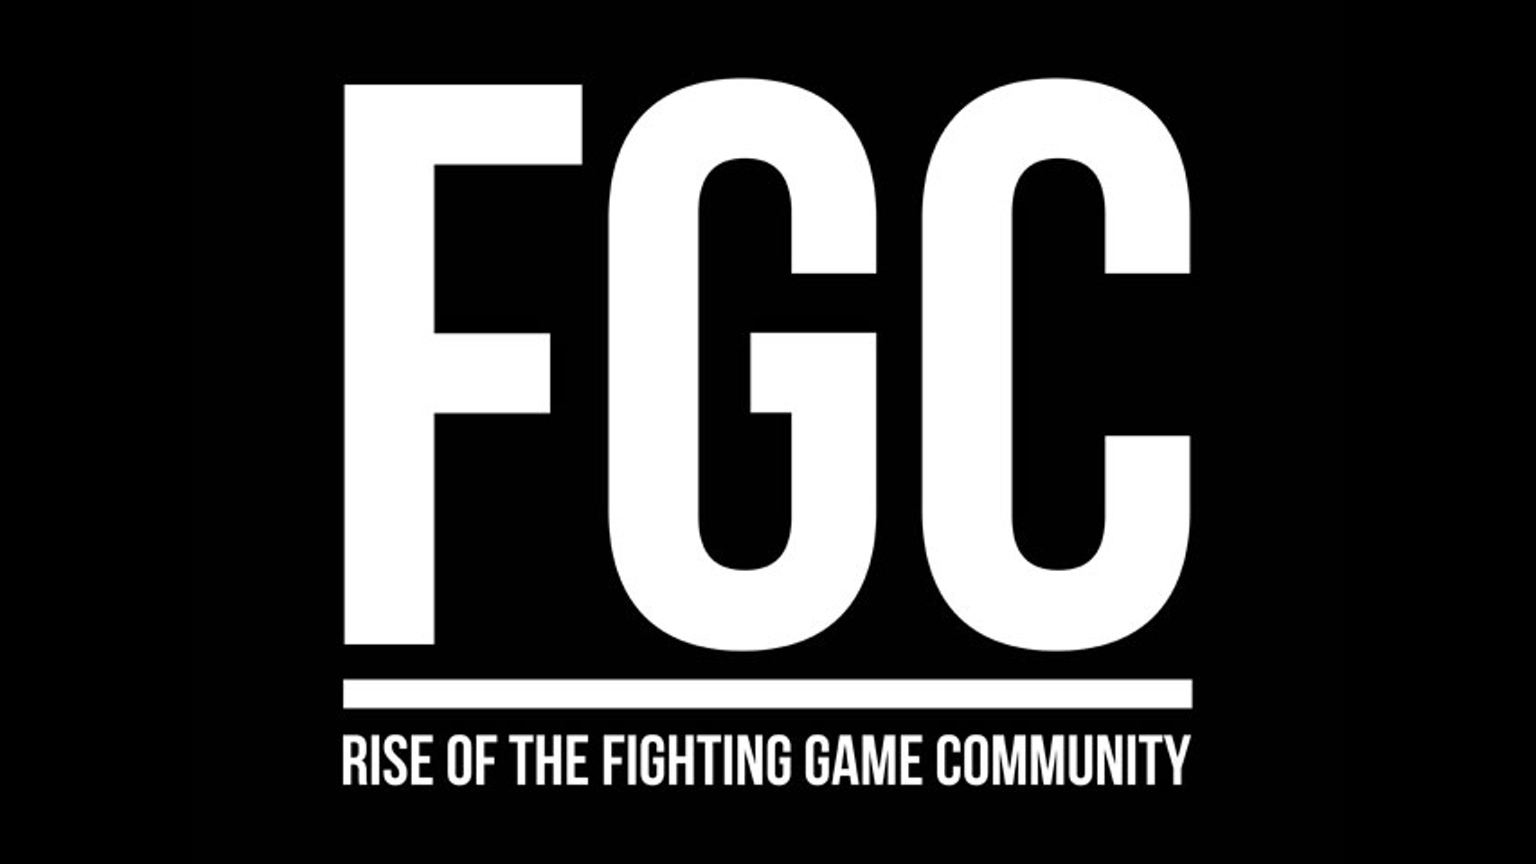 FGC - Rise of the Fighting Game Community